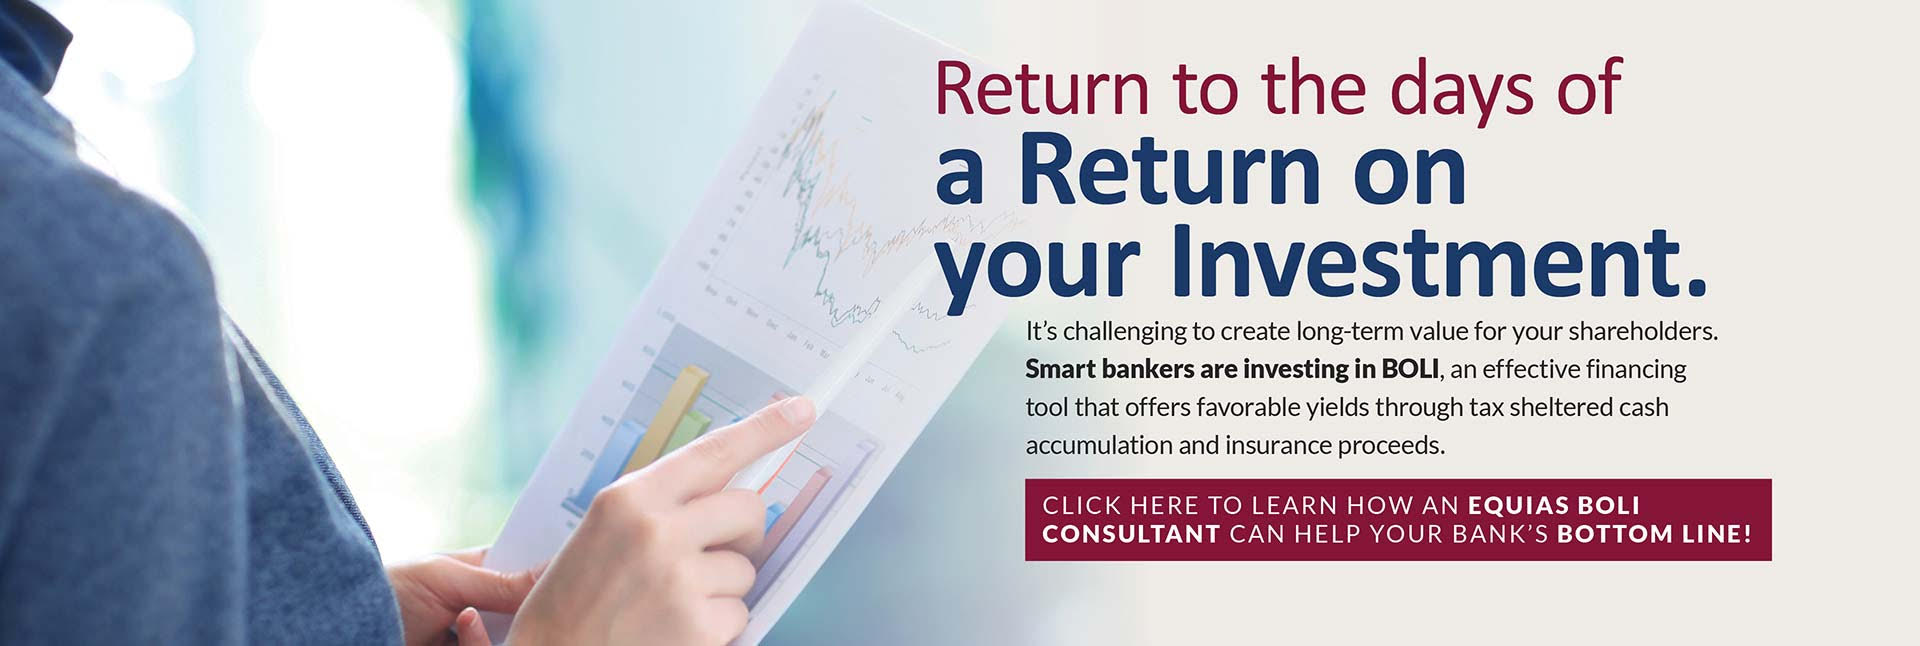 Return to the days of a Return on your investment